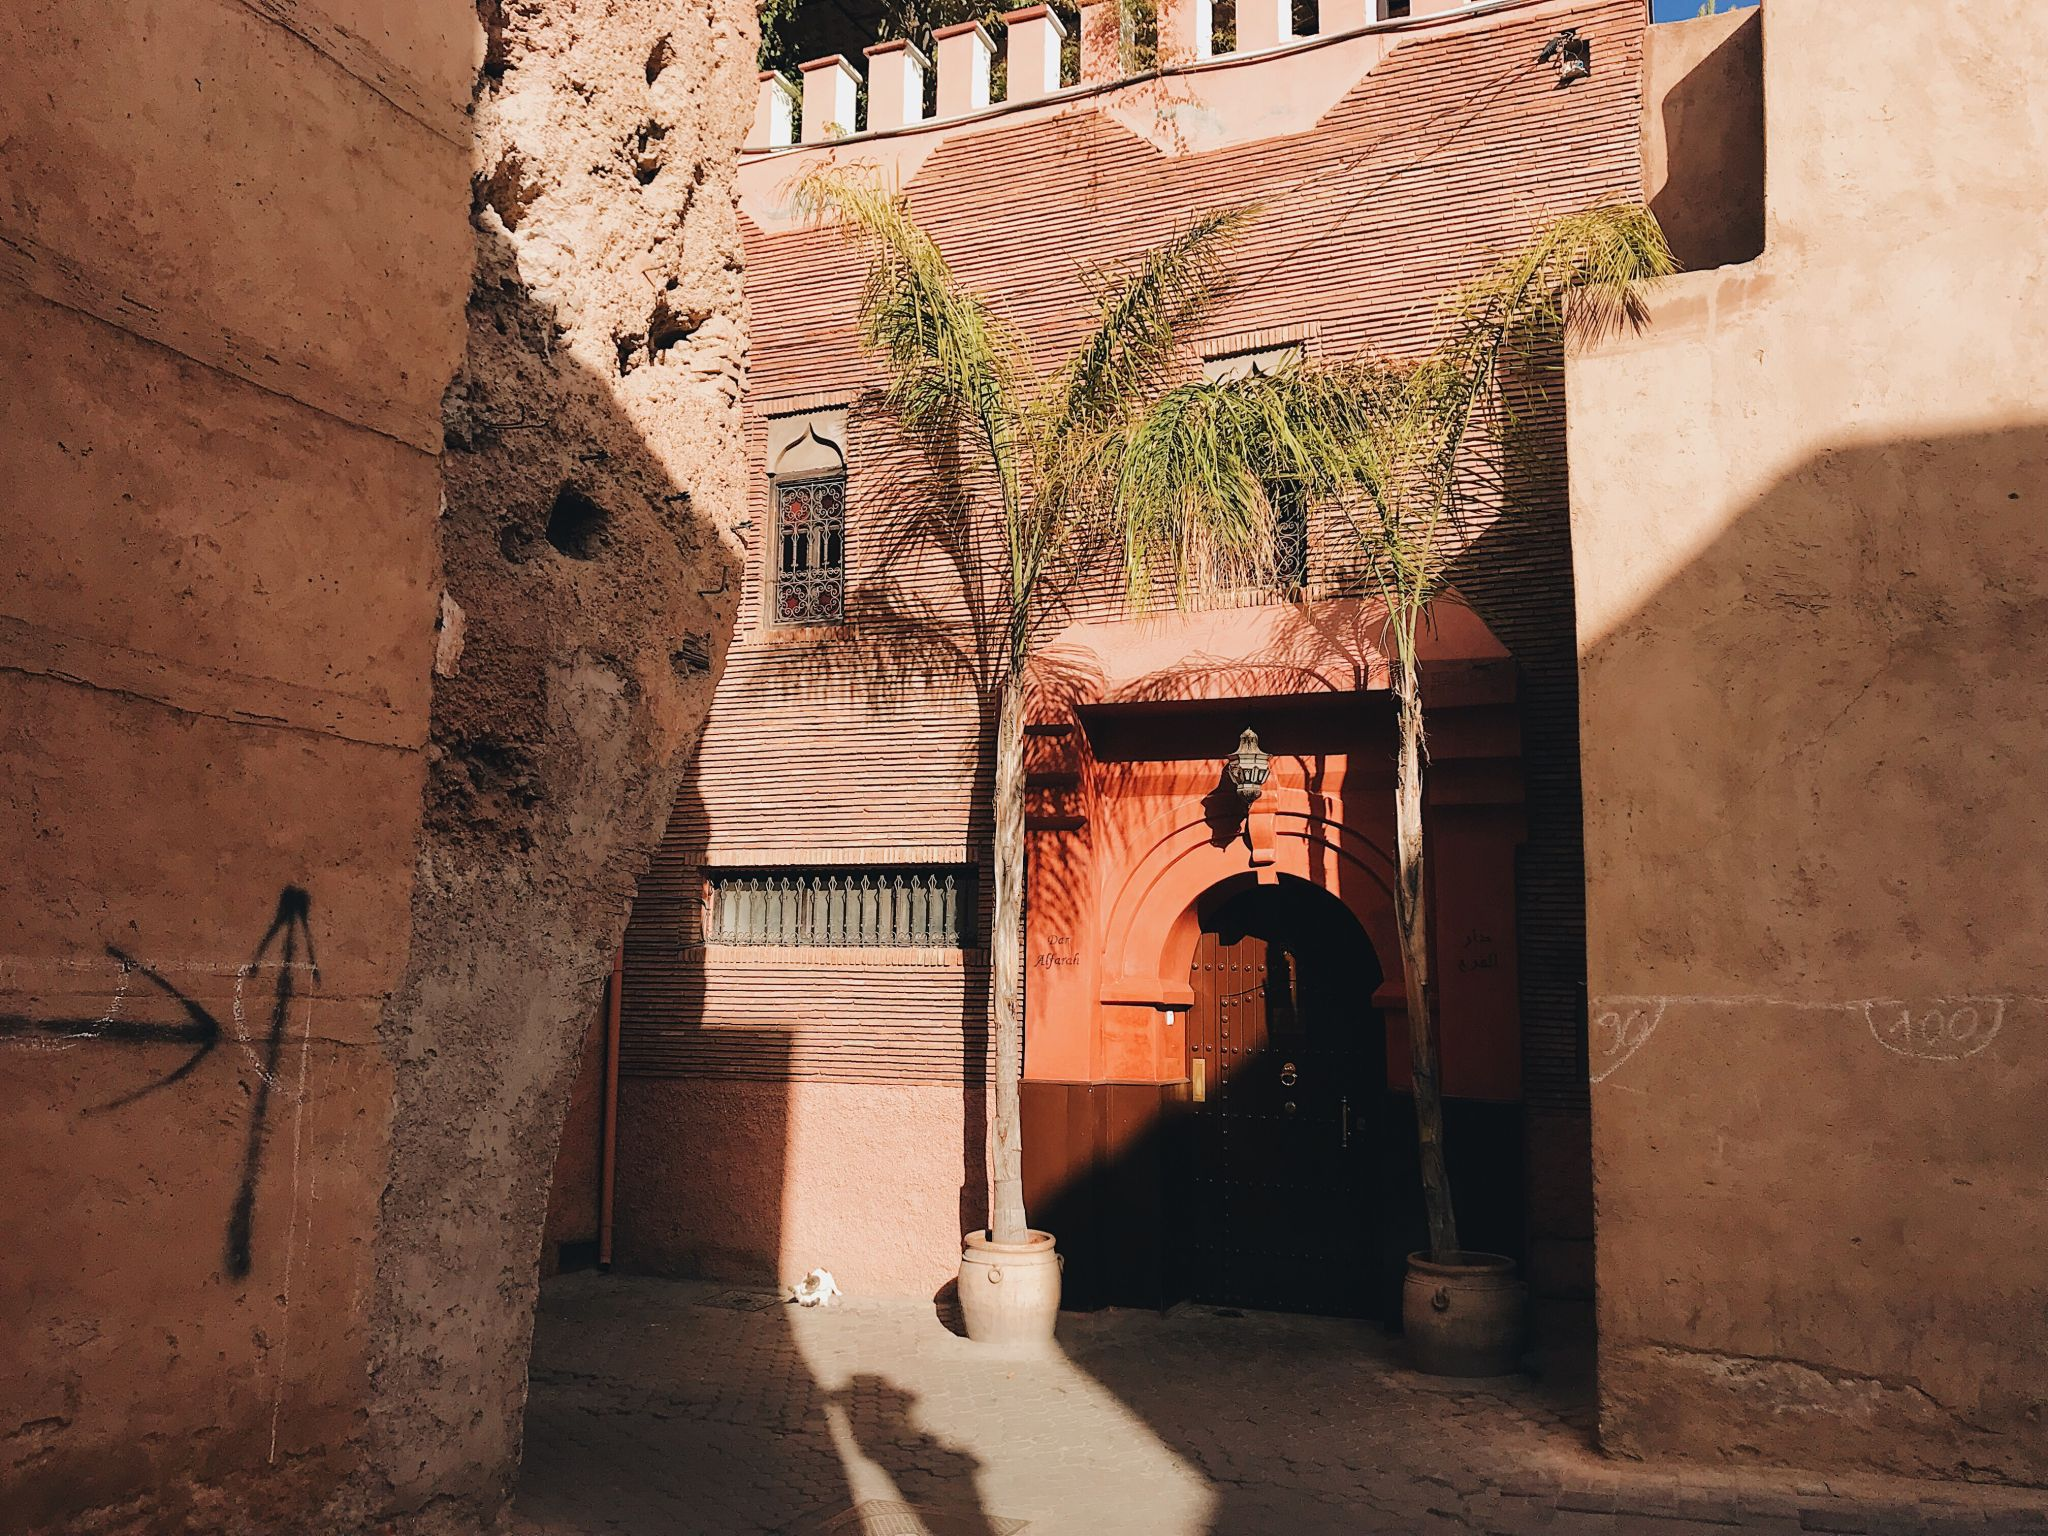 One Week In Morocco, Marrakech Medina